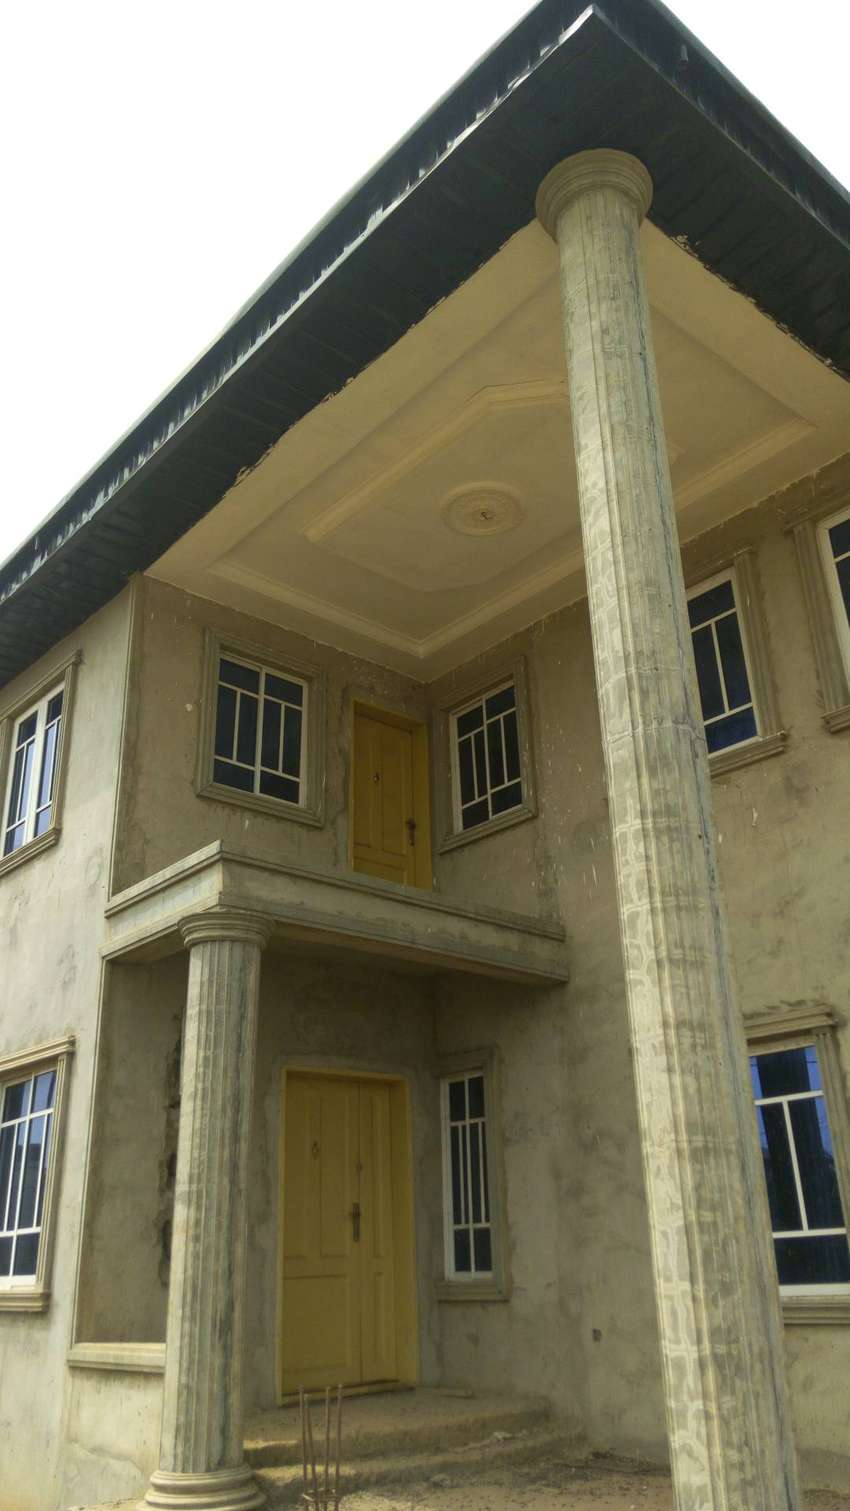 4 Bedroom Duplex with Attached BQ 0